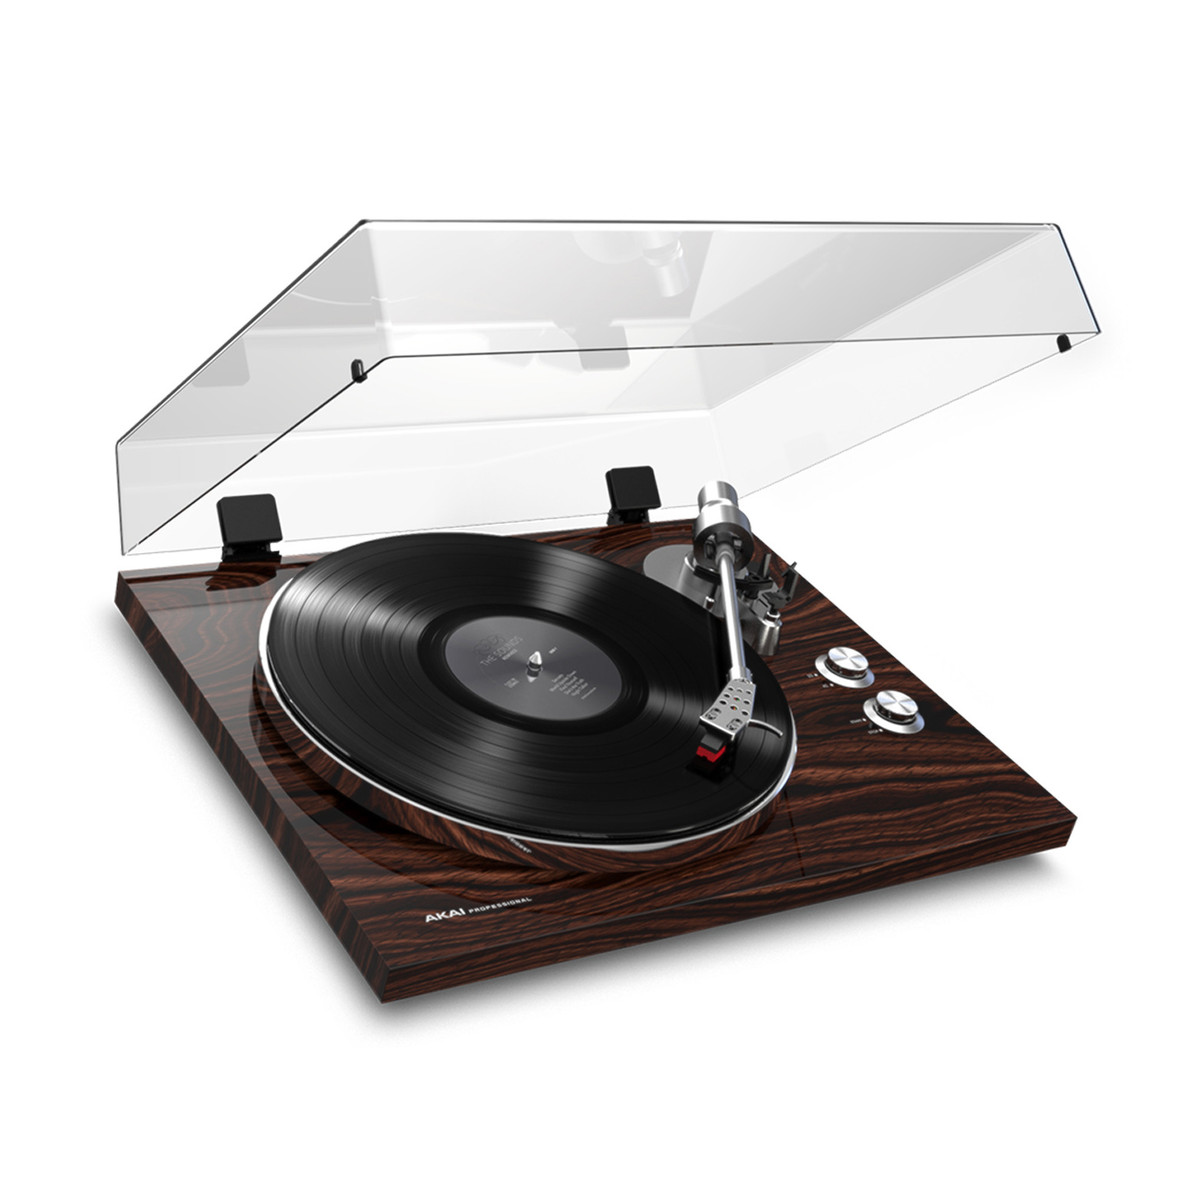 akai bt 500 platine vinyle belt drive. Black Bedroom Furniture Sets. Home Design Ideas